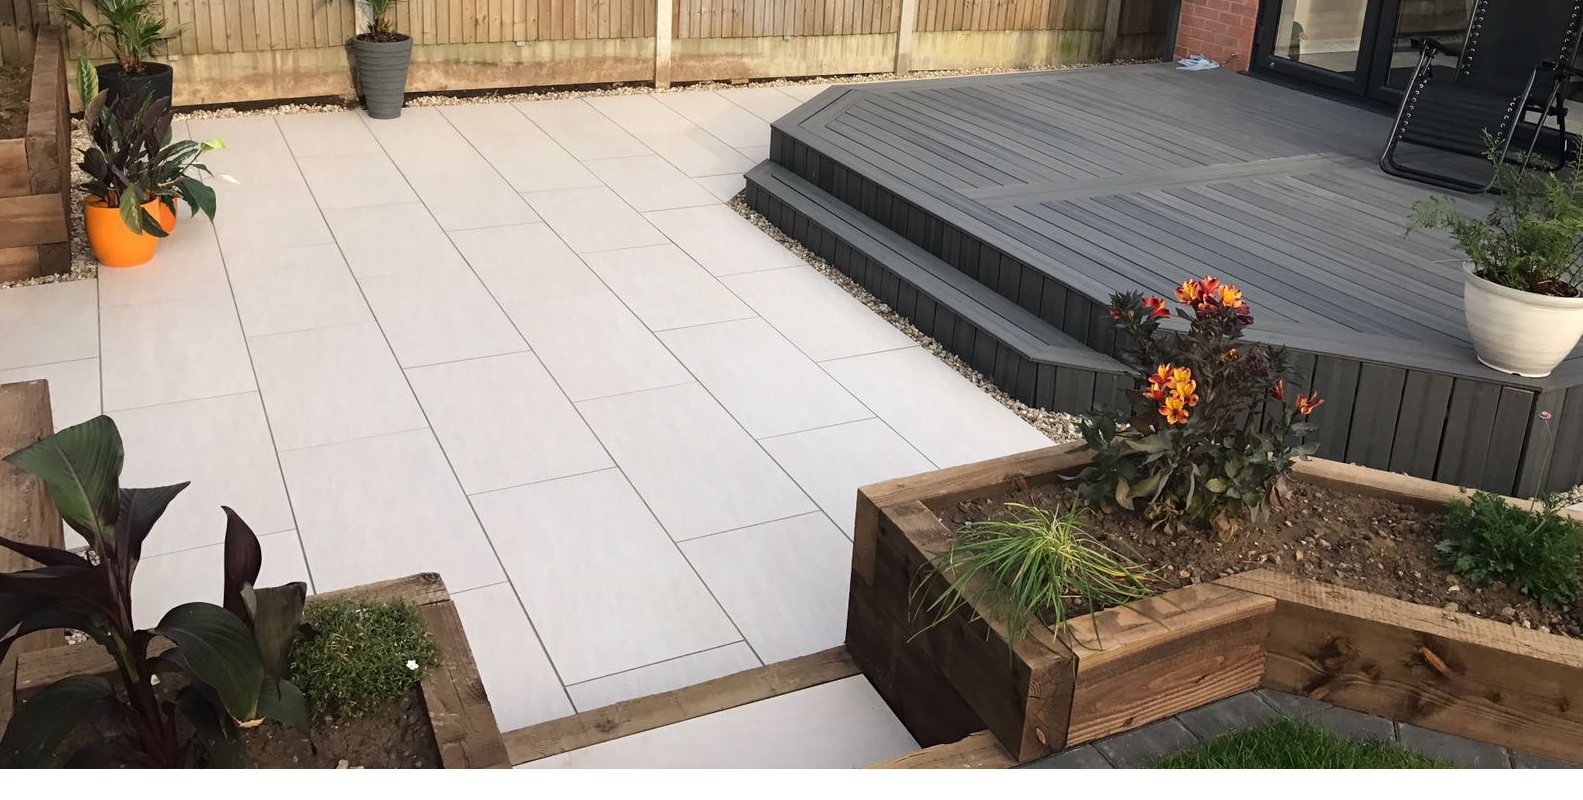 Vitrified Porcelain Paving And Natural Stone Paving Slabs